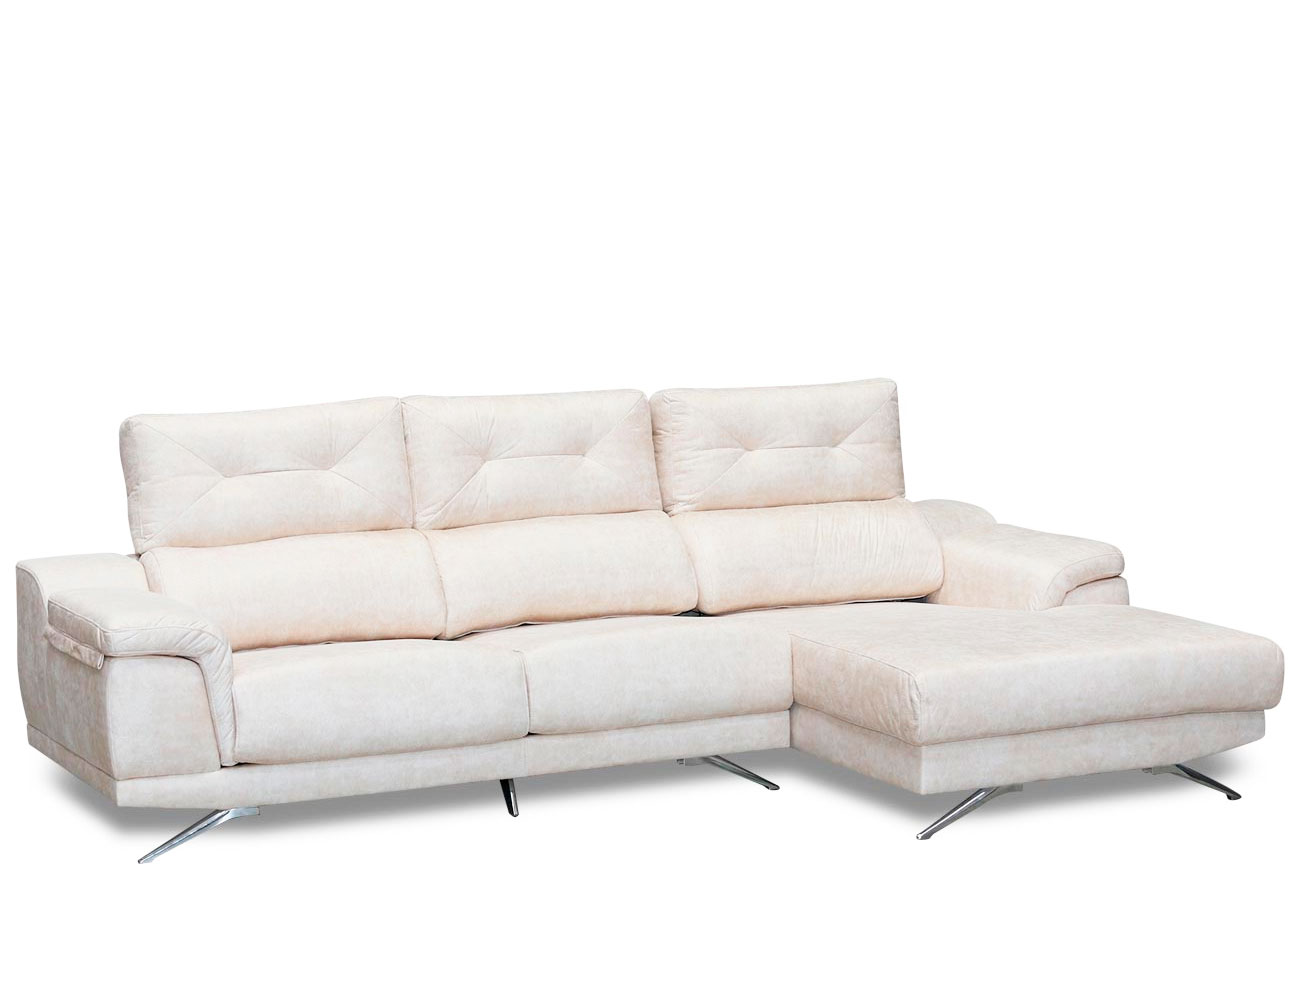 Sofa chaiselongue moderno anti manchas detalle 2